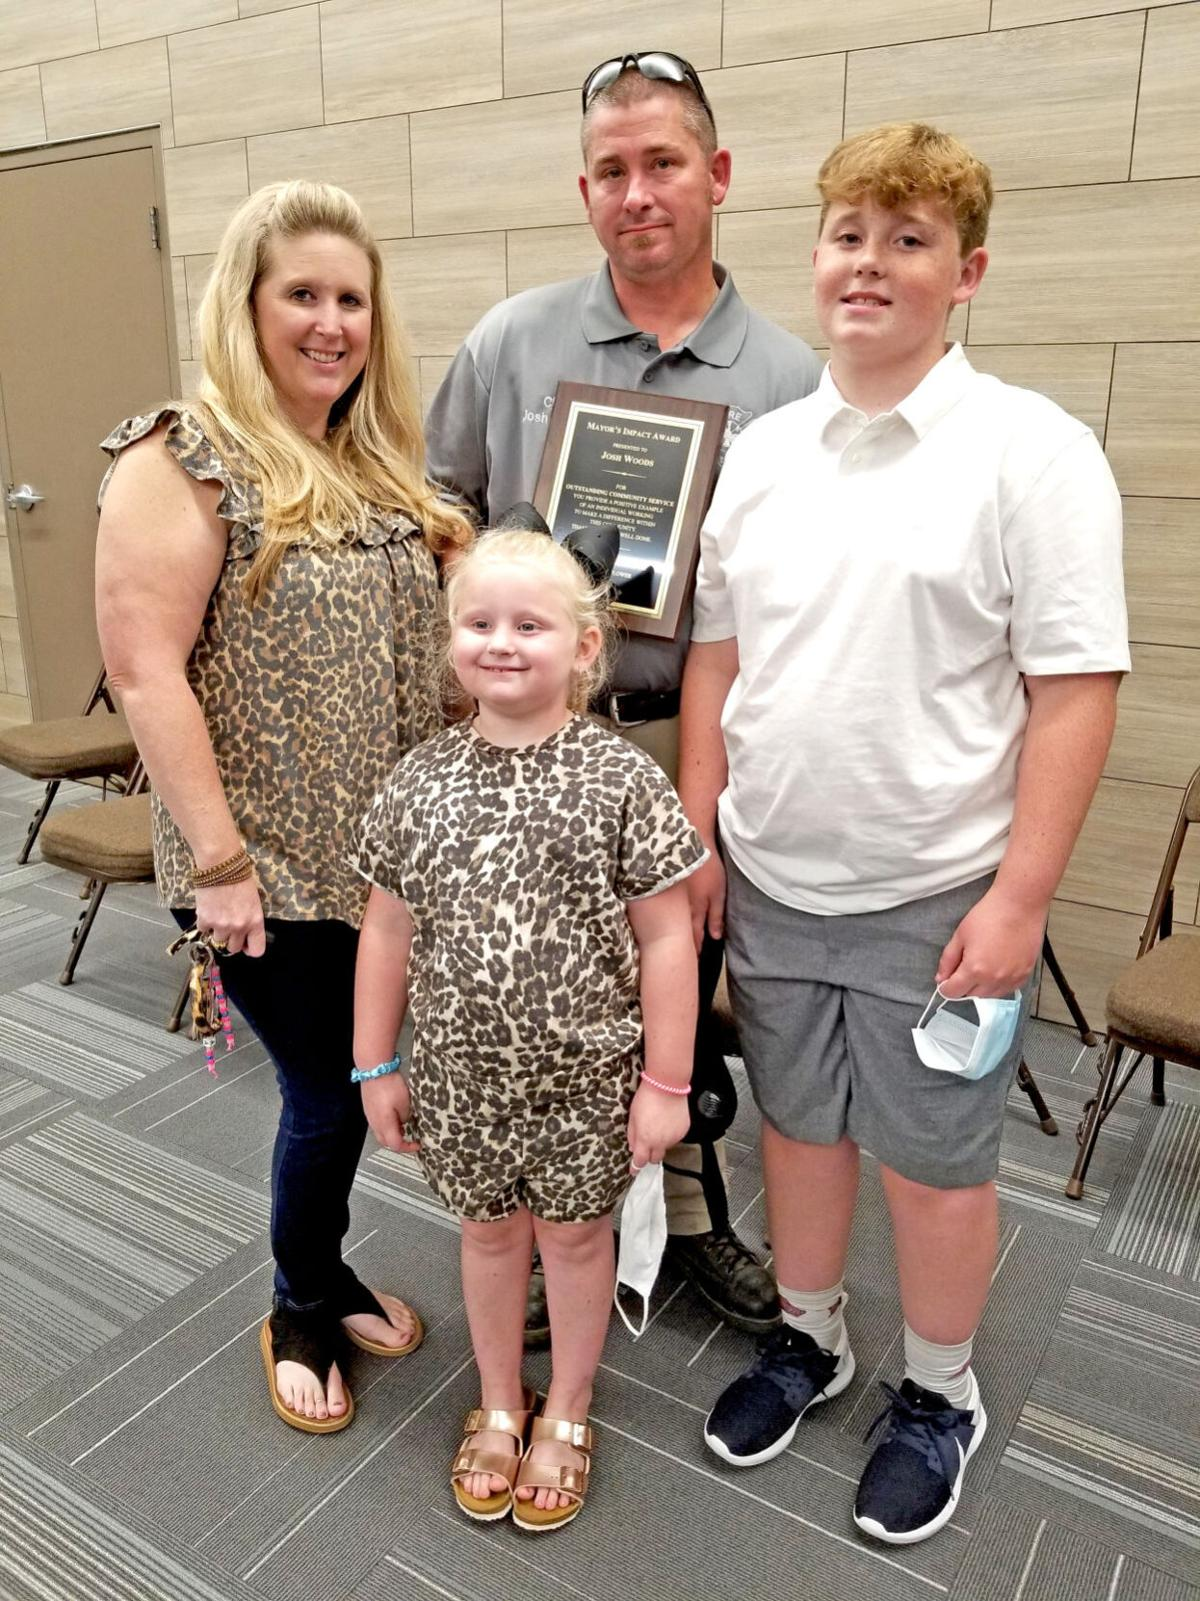 Fire chief recognized for being 'a hero,' 'going the extra mile'